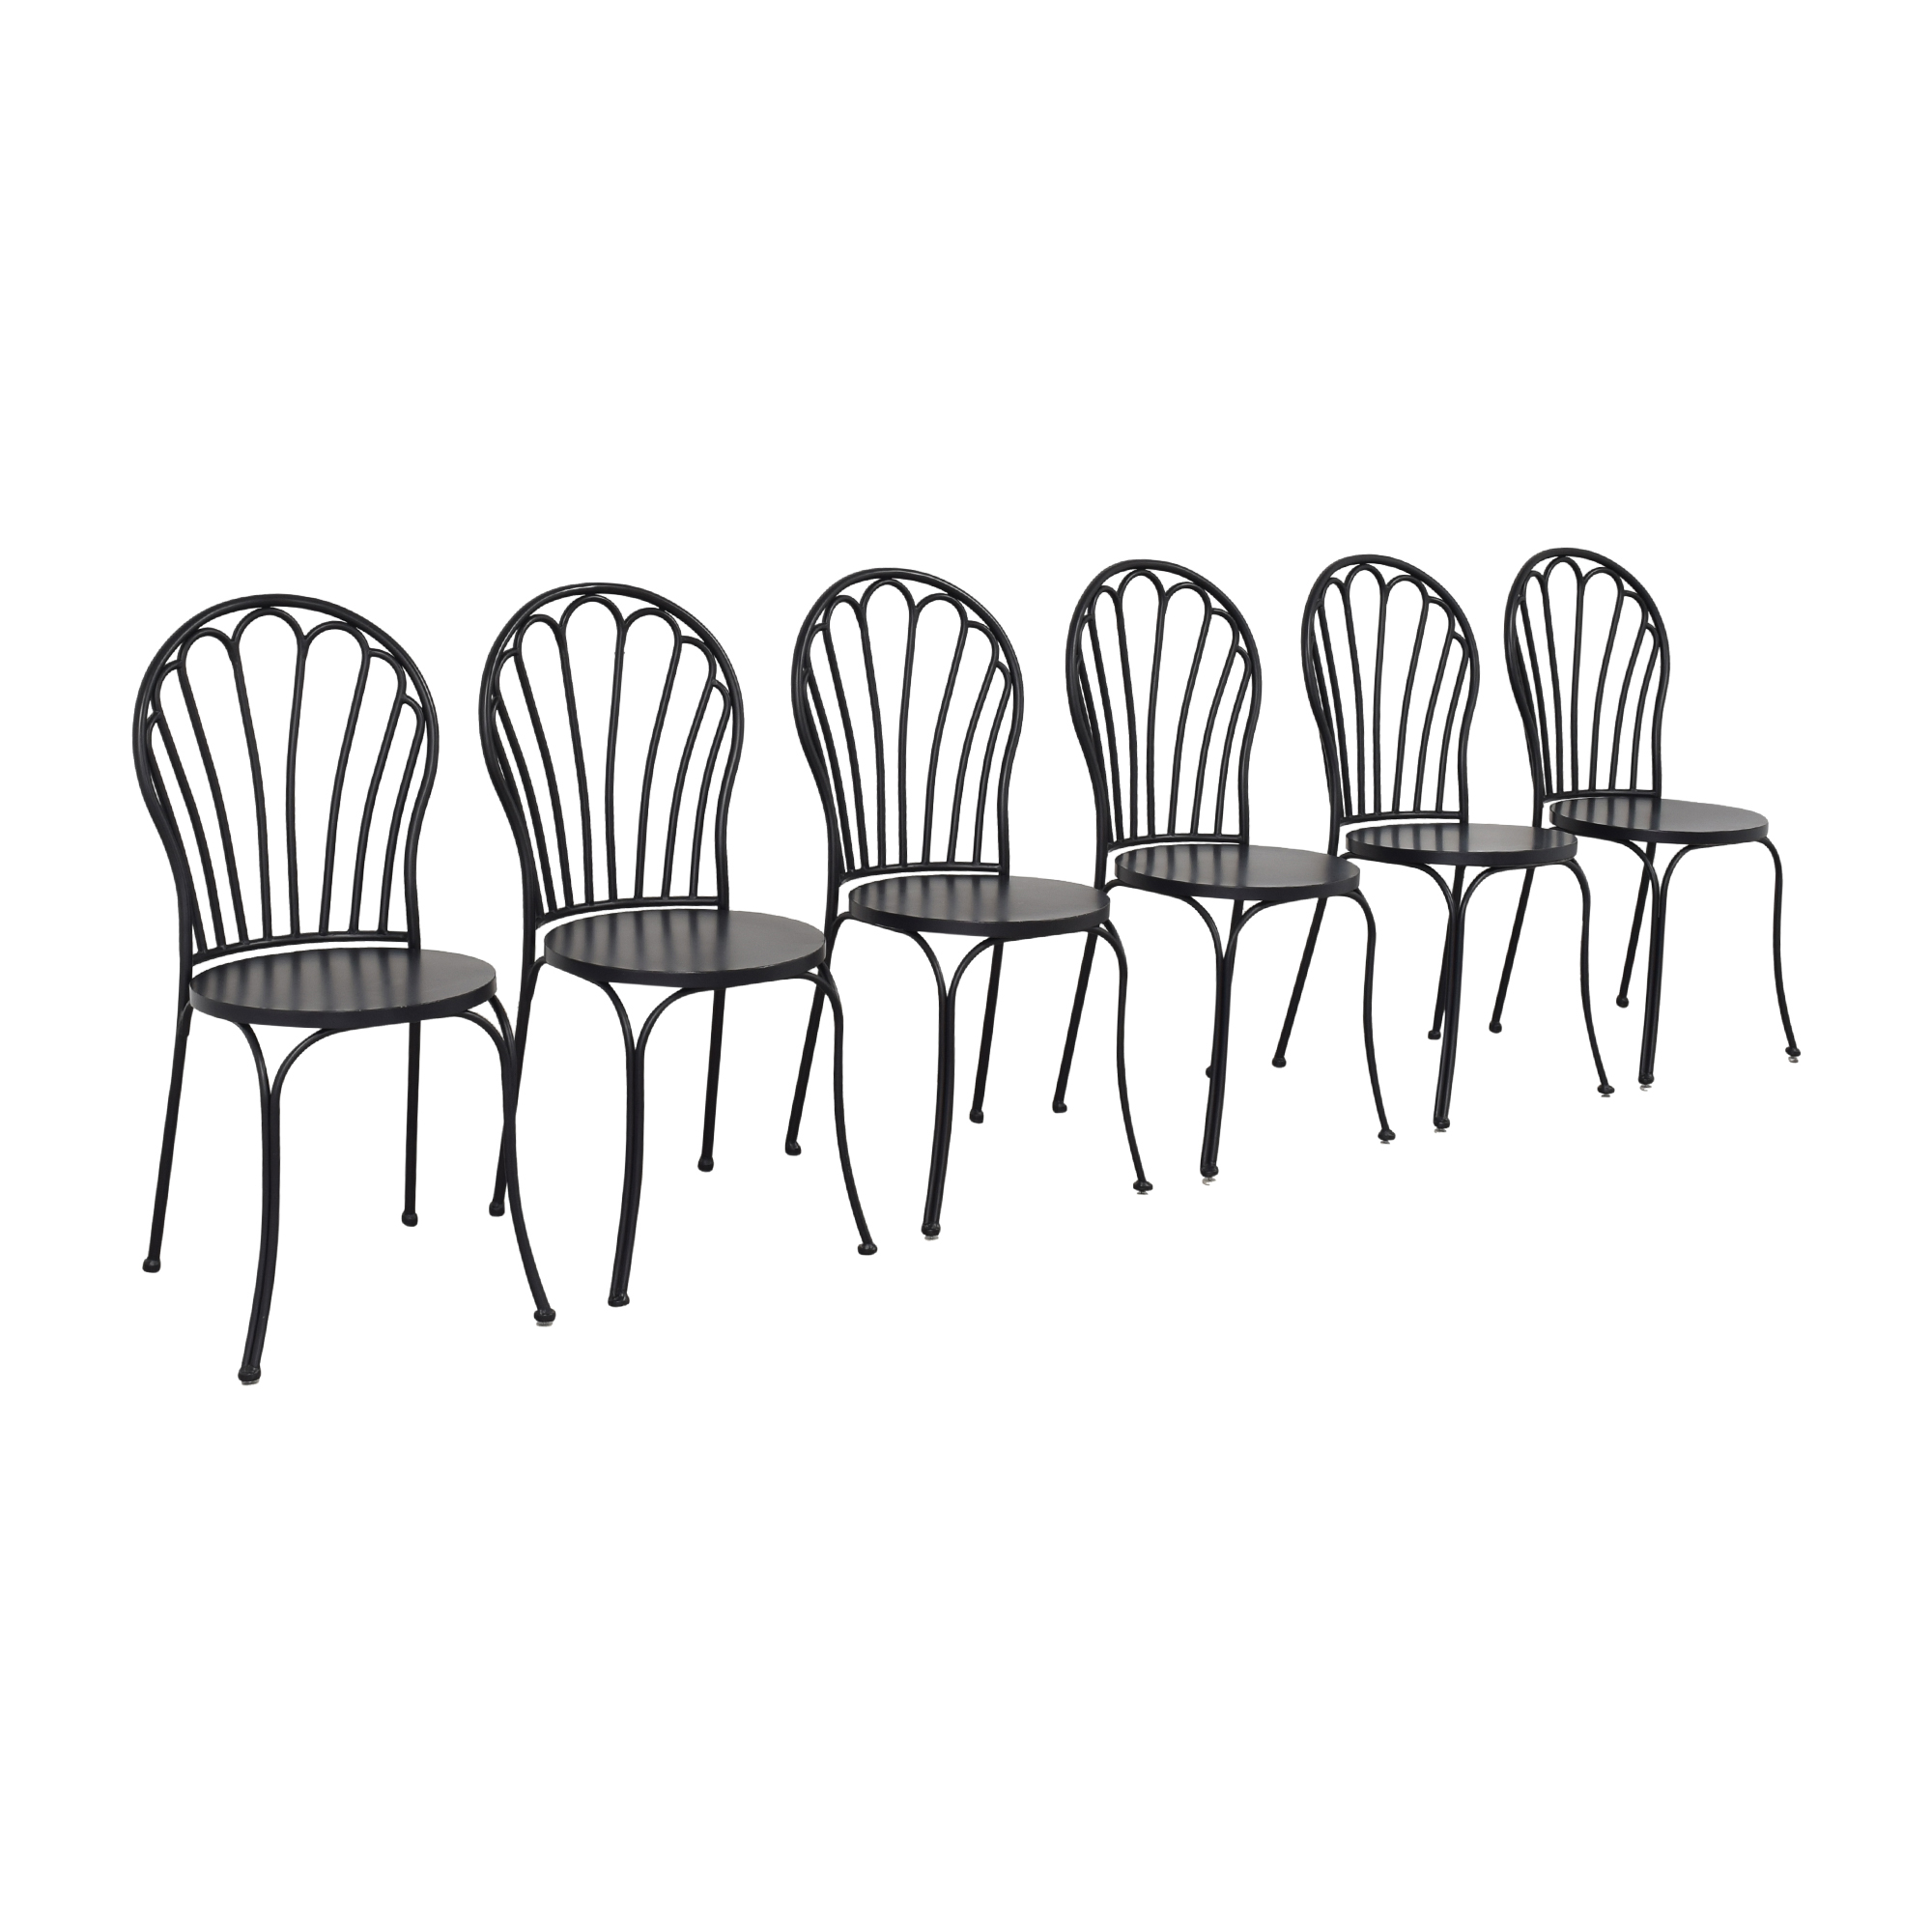 buy Magnolia Home Magnolia Home Dining Chairs online